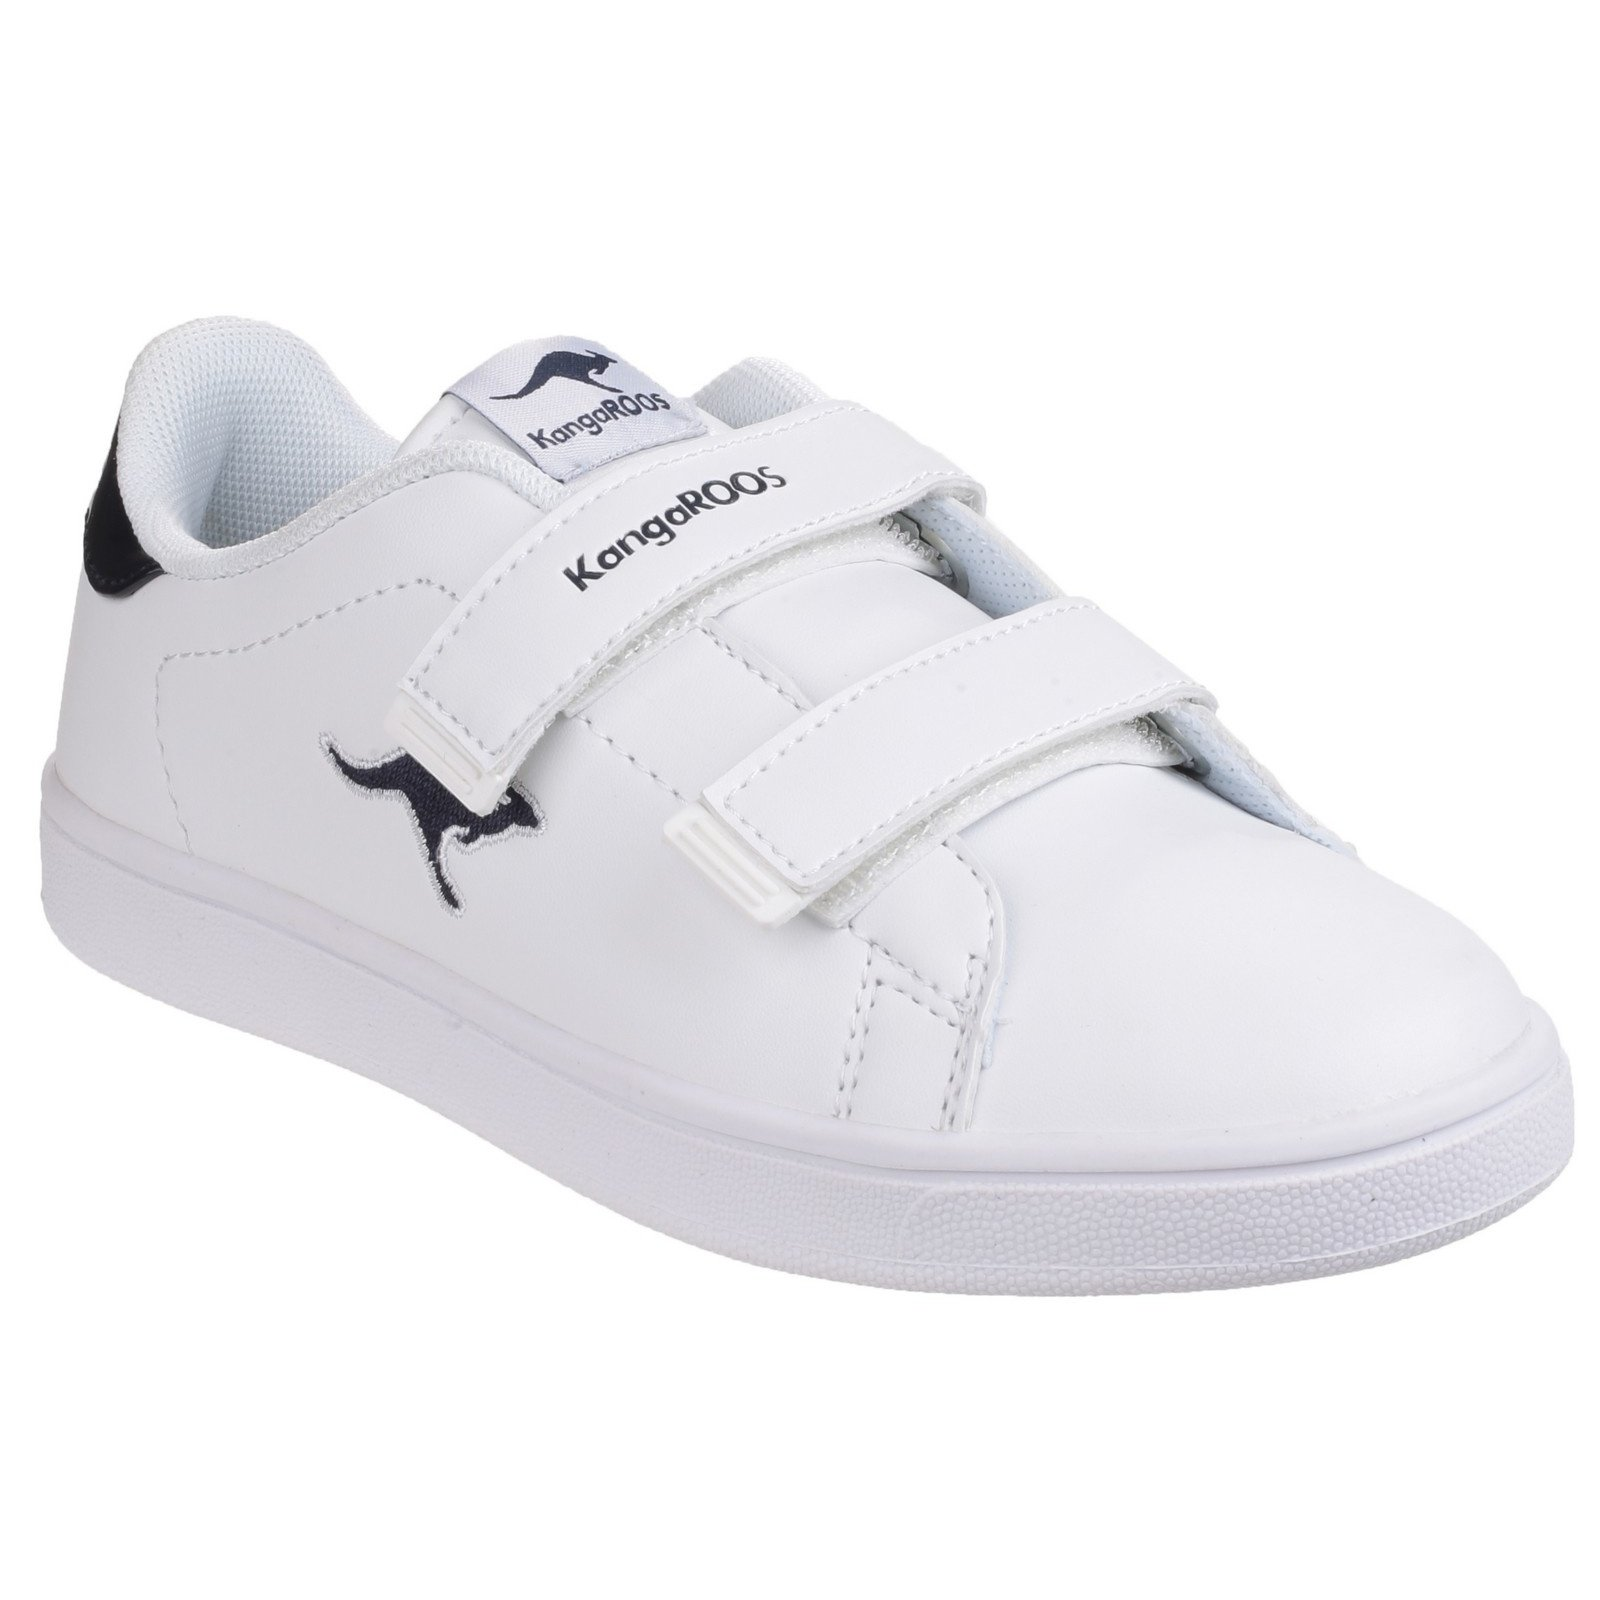 KangaROOS Childrens/Kids K-Classic Touch Fastening Sneakers (3.5 US) (White/Navy)